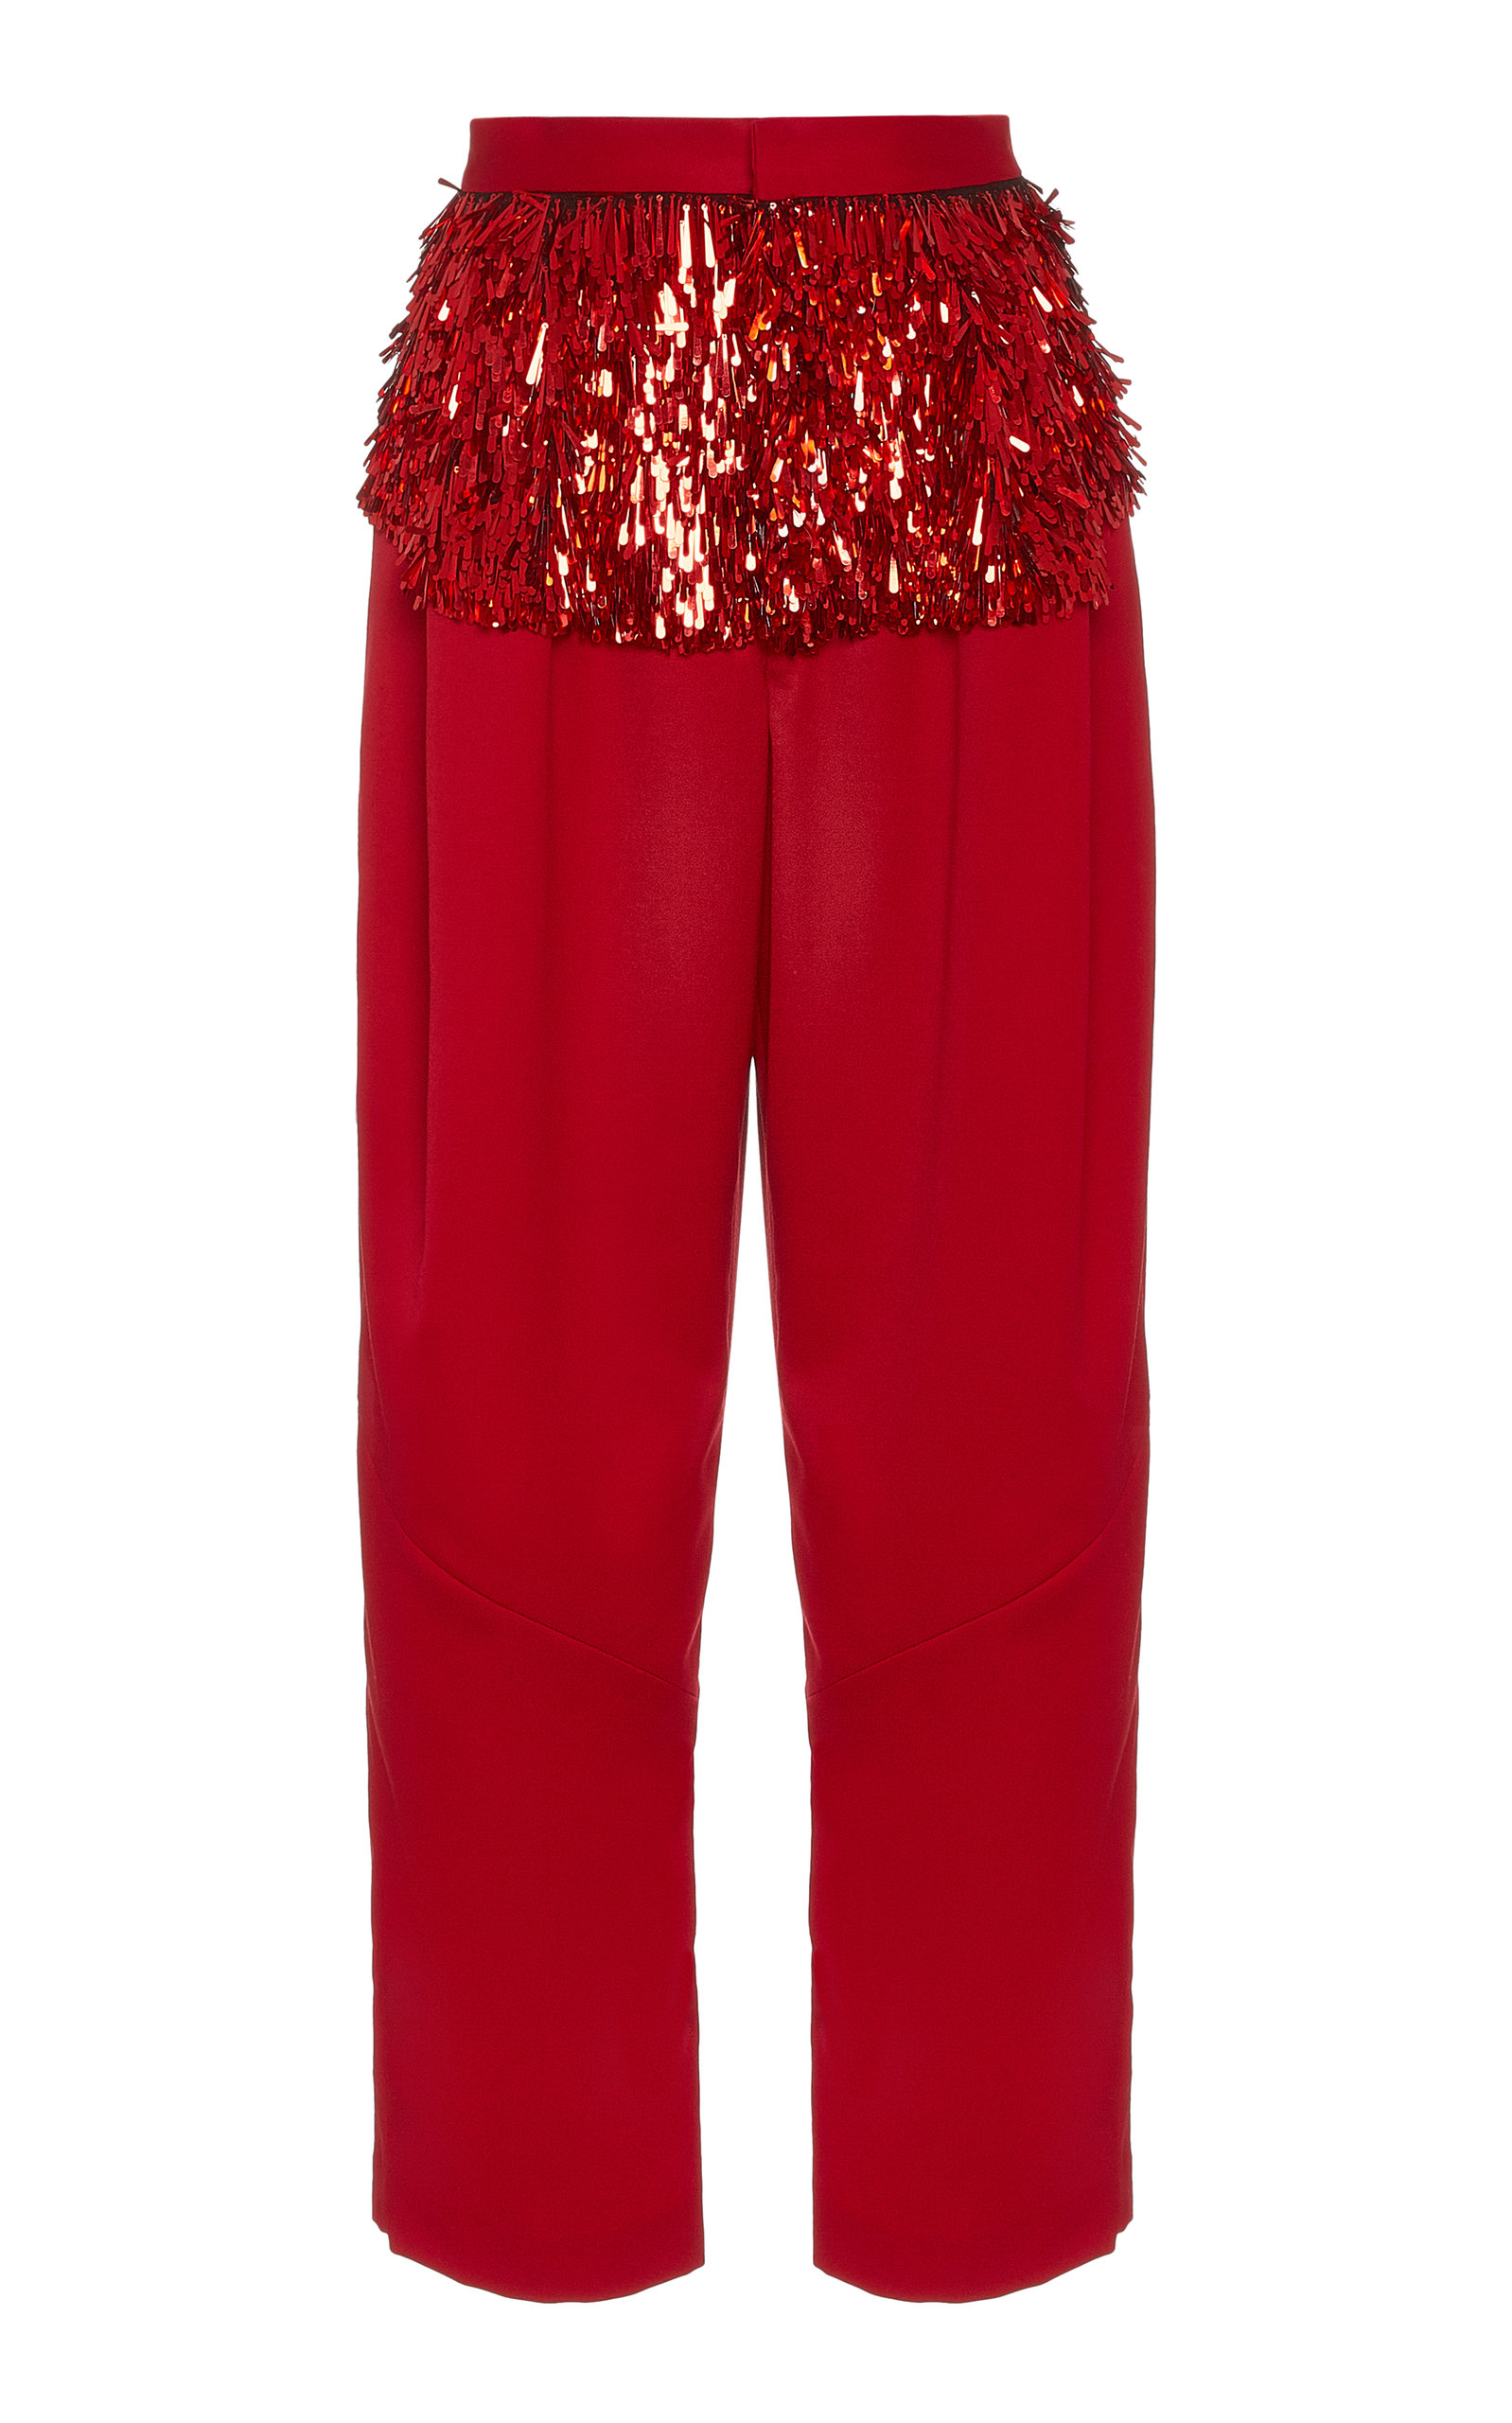 Rachel Comey Divide pant in red wool with sequin embellishment.